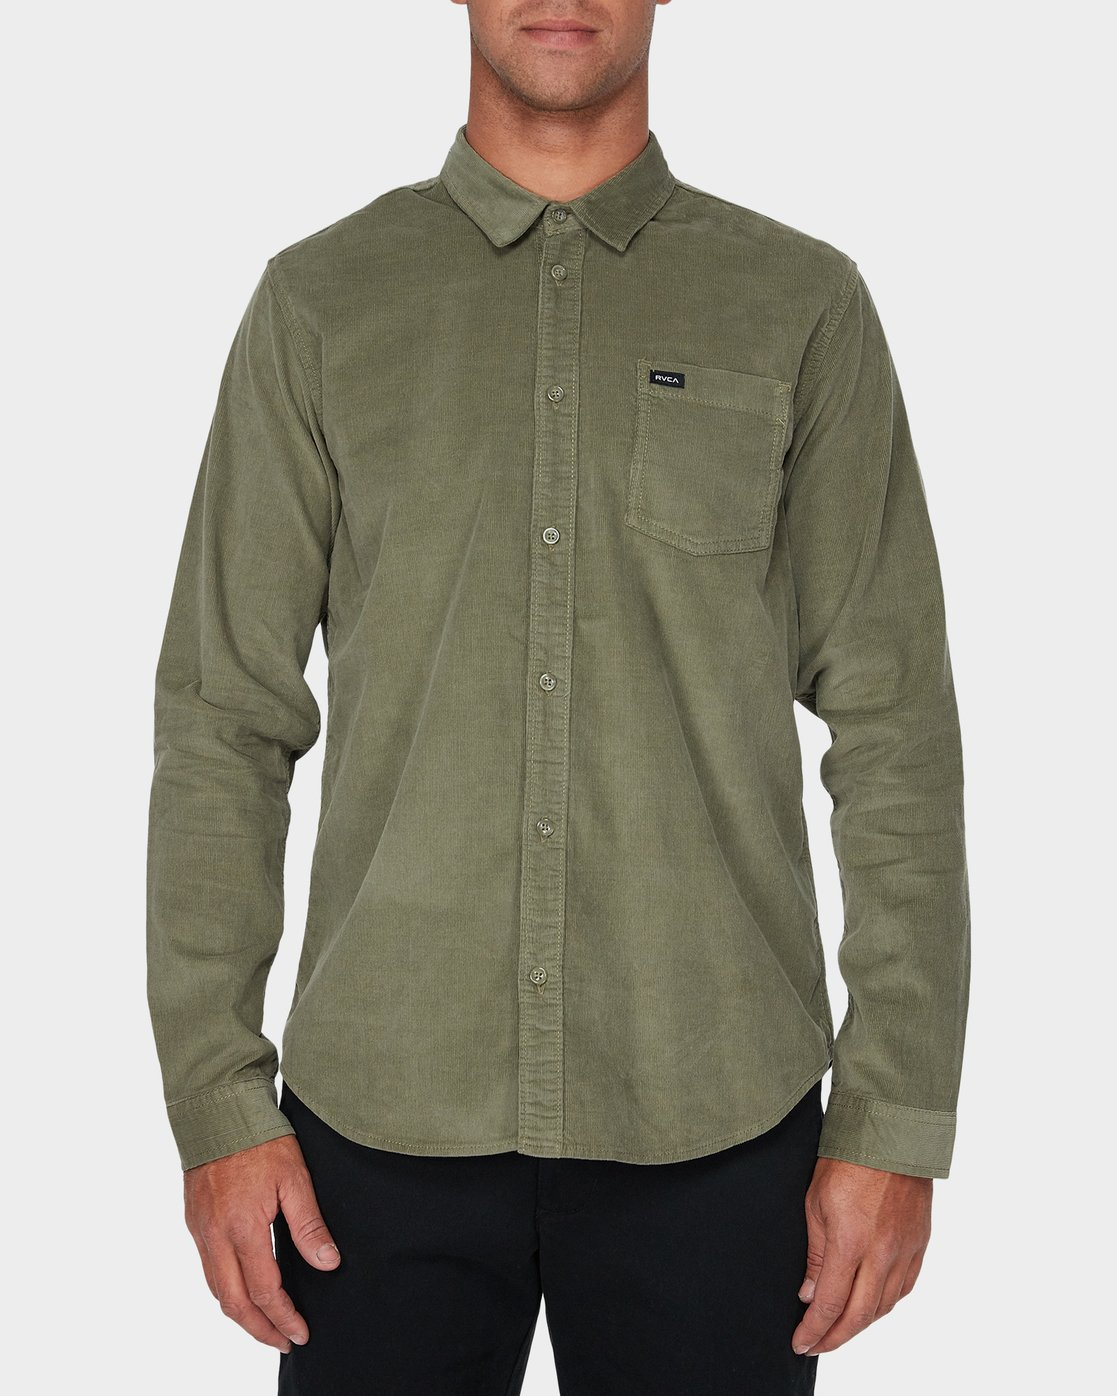 0 Truest Long Sleeve Shirt Brown R181186 RVCA